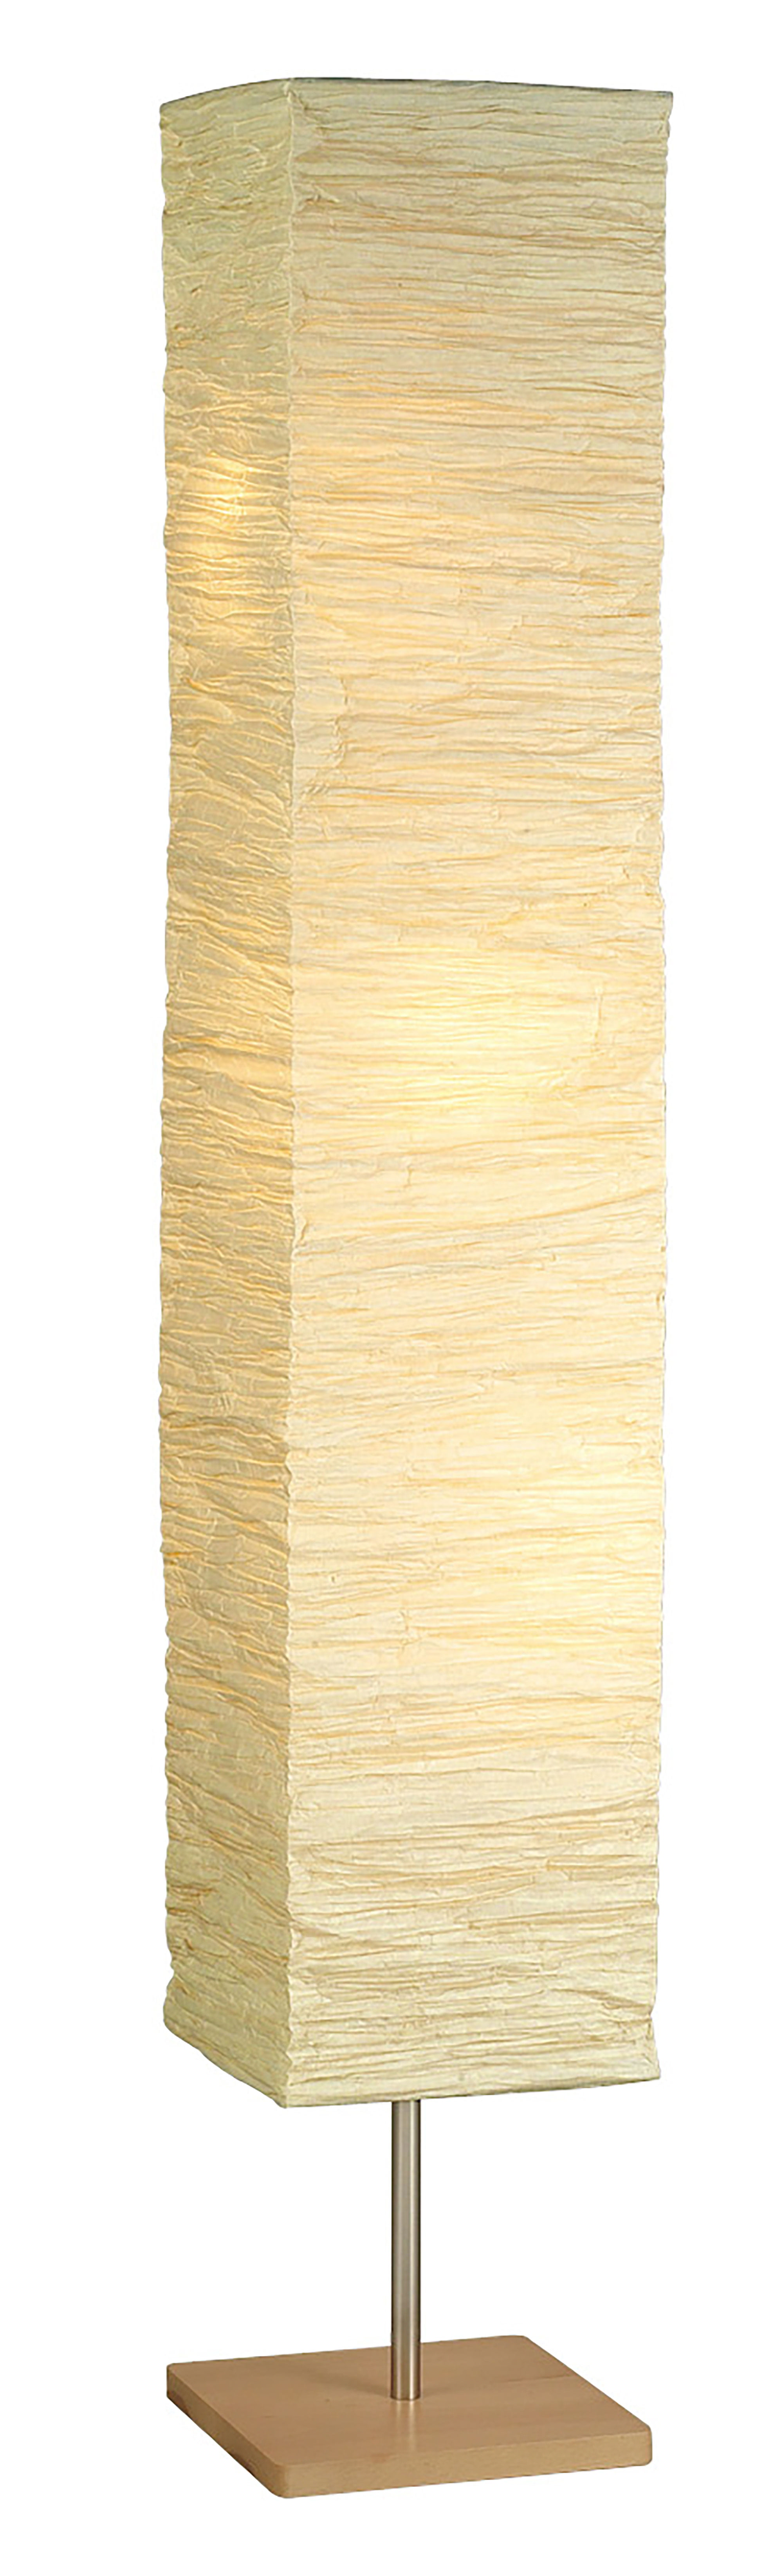 Adesso Dune Floorchiere®, Natural Rubber Wood,Steel accents